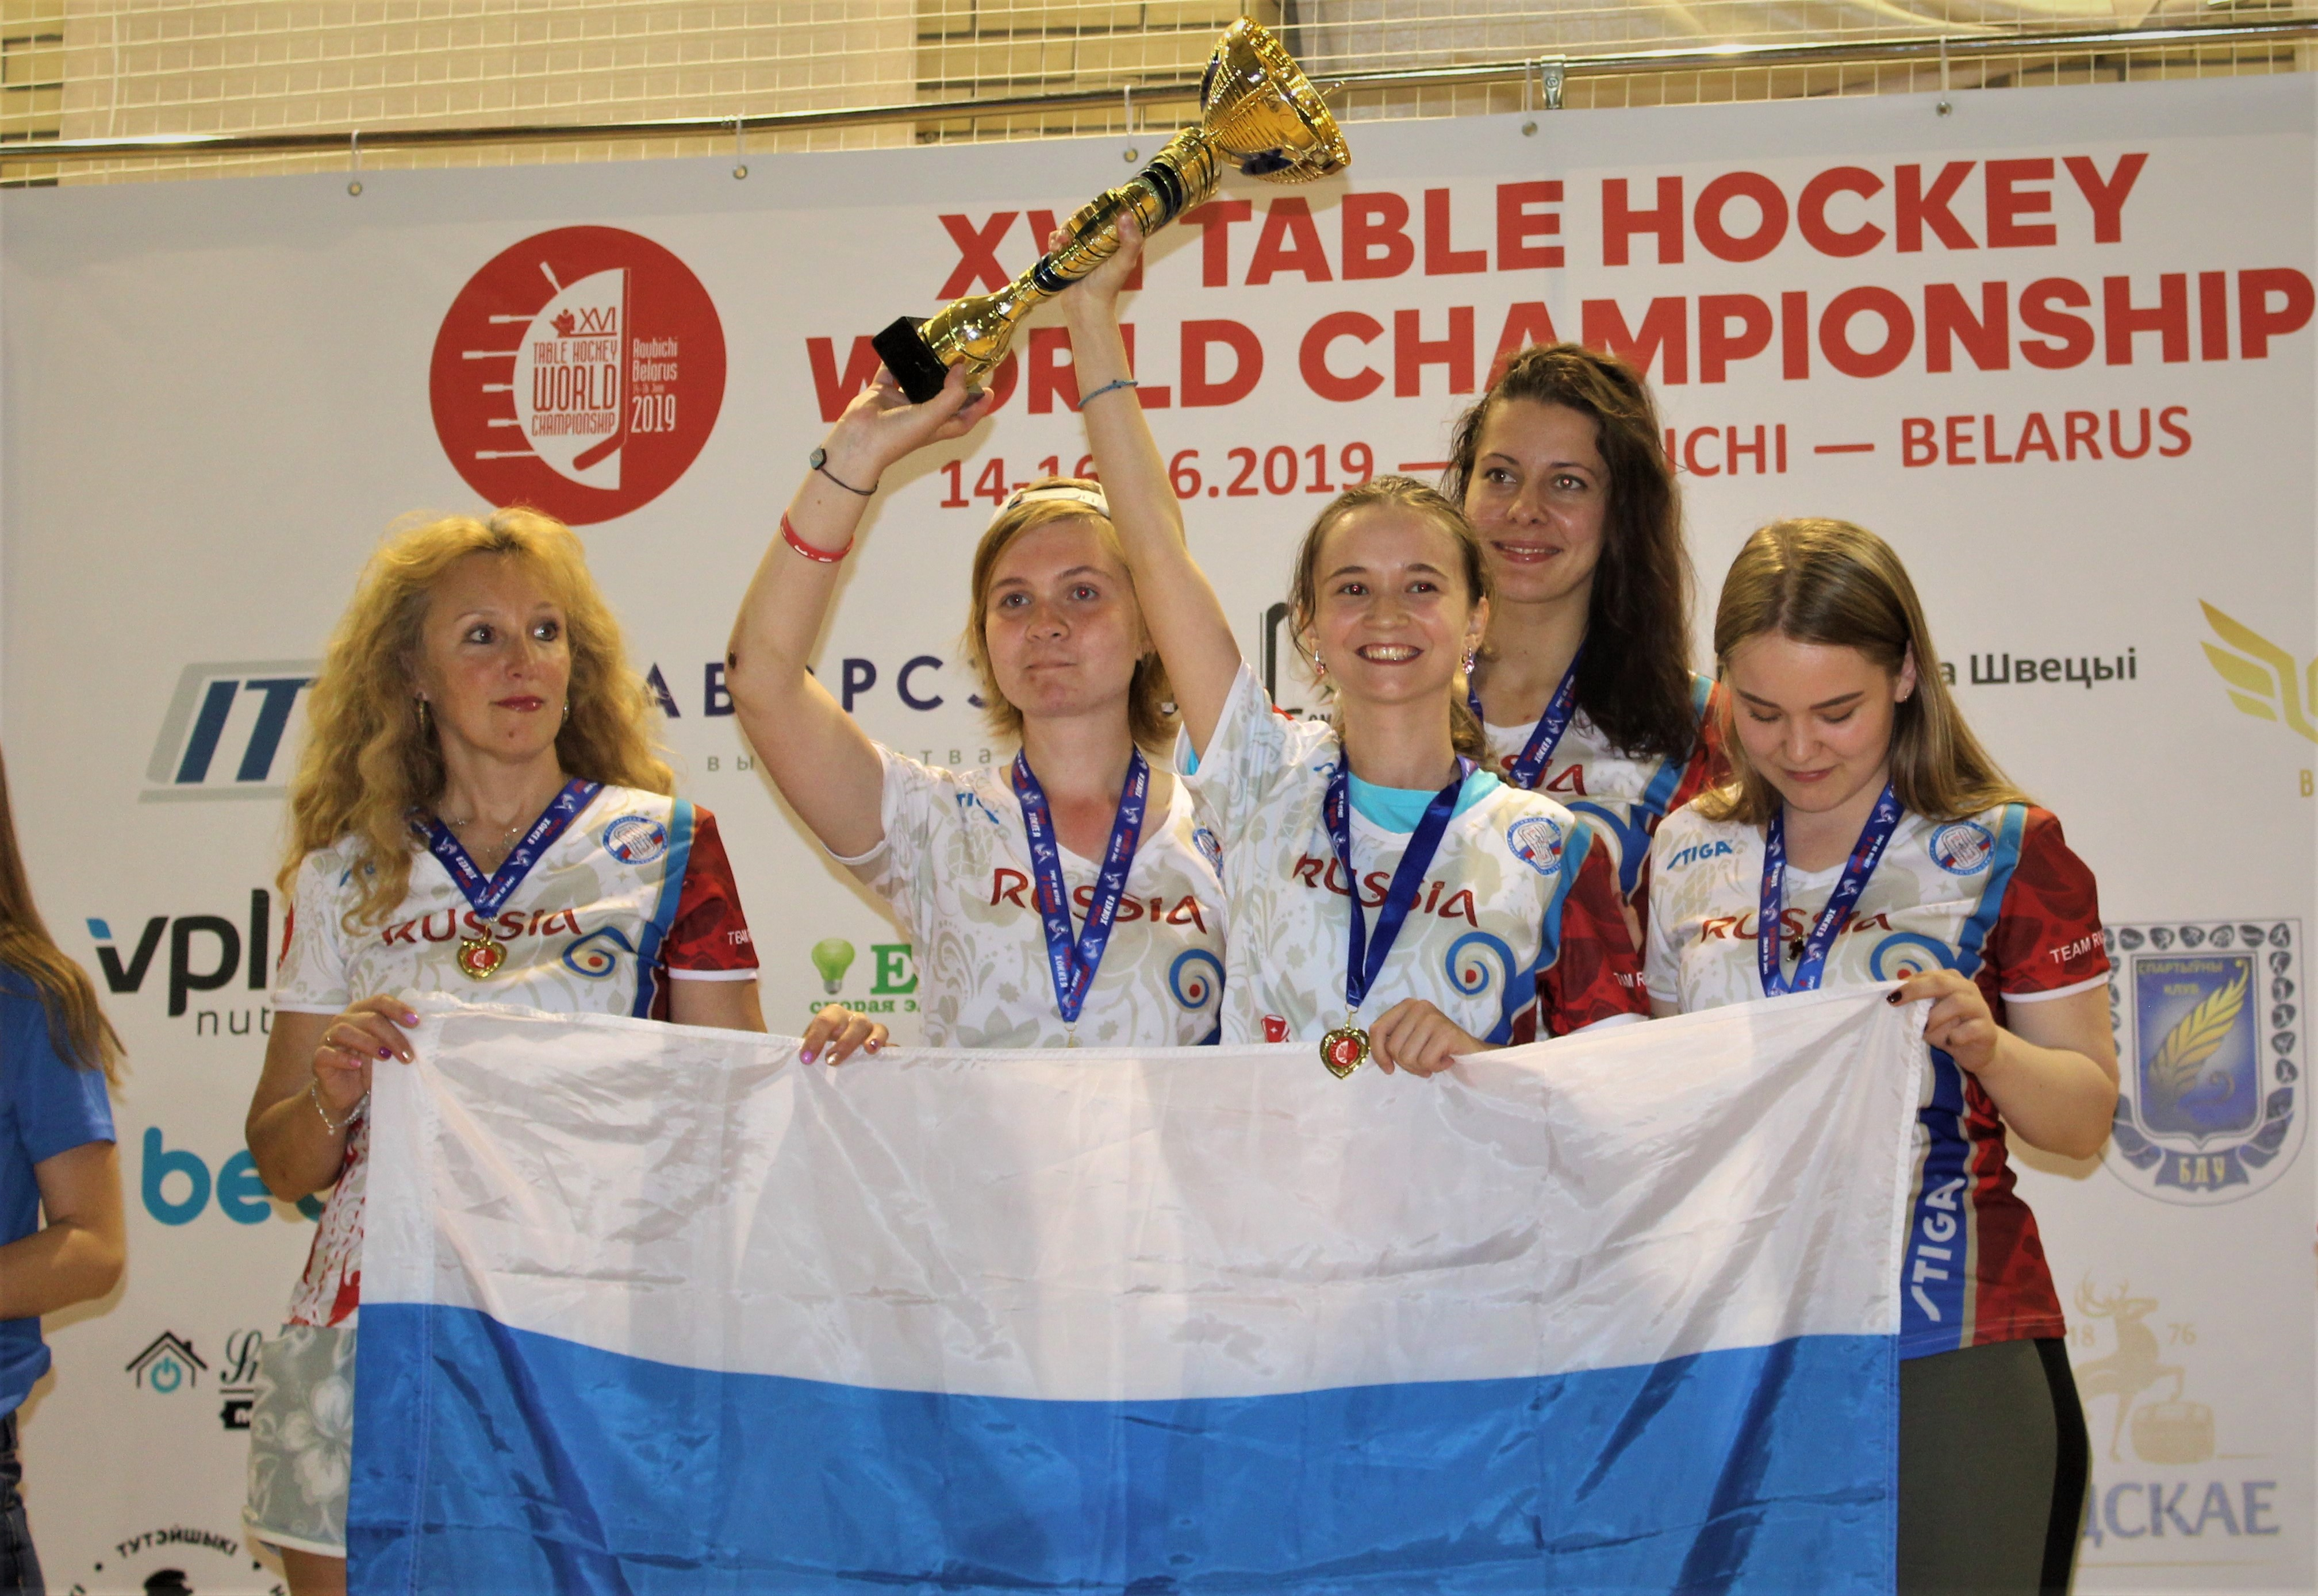 Photograph of the Russian Women's Stiga Table Hockey Championship Team 2019